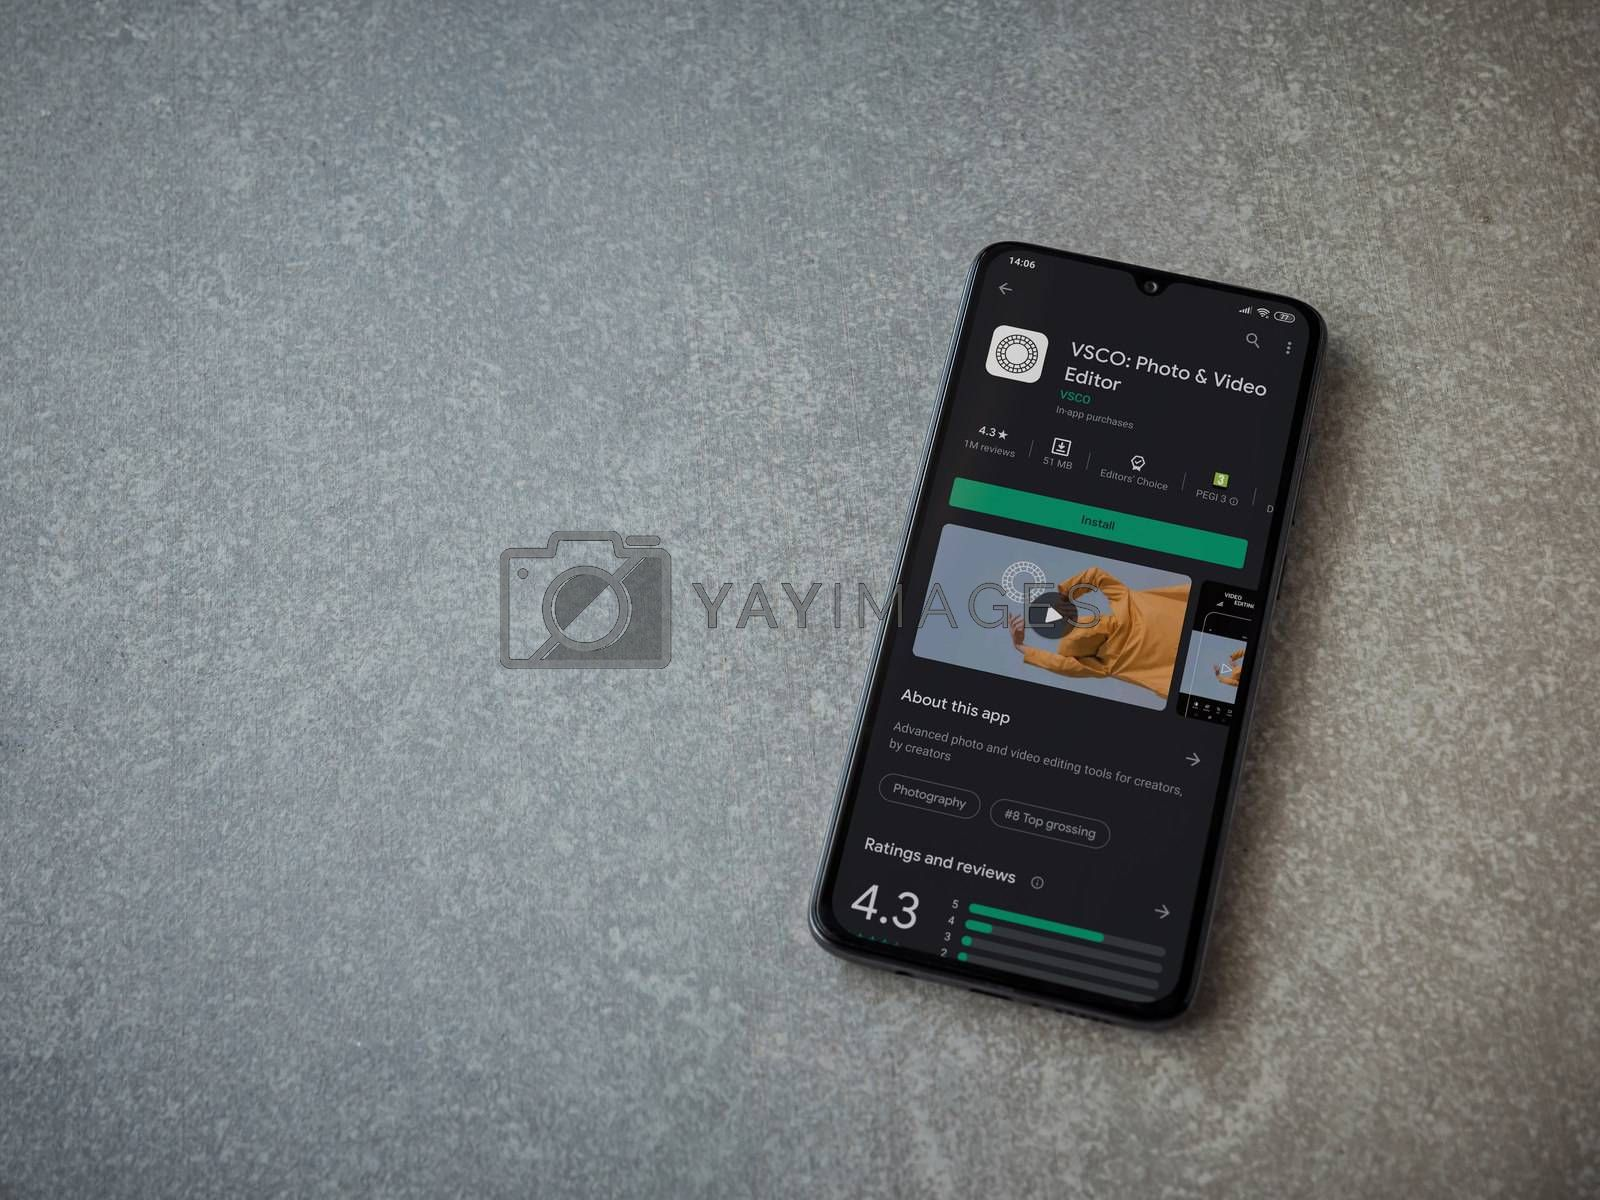 Lod, Israel - July 8, 2020: VSCO - Photo and Video Editor app play store page on the display of a black mobile smartphone on ceramic stone background. Top view flat lay with copy space.